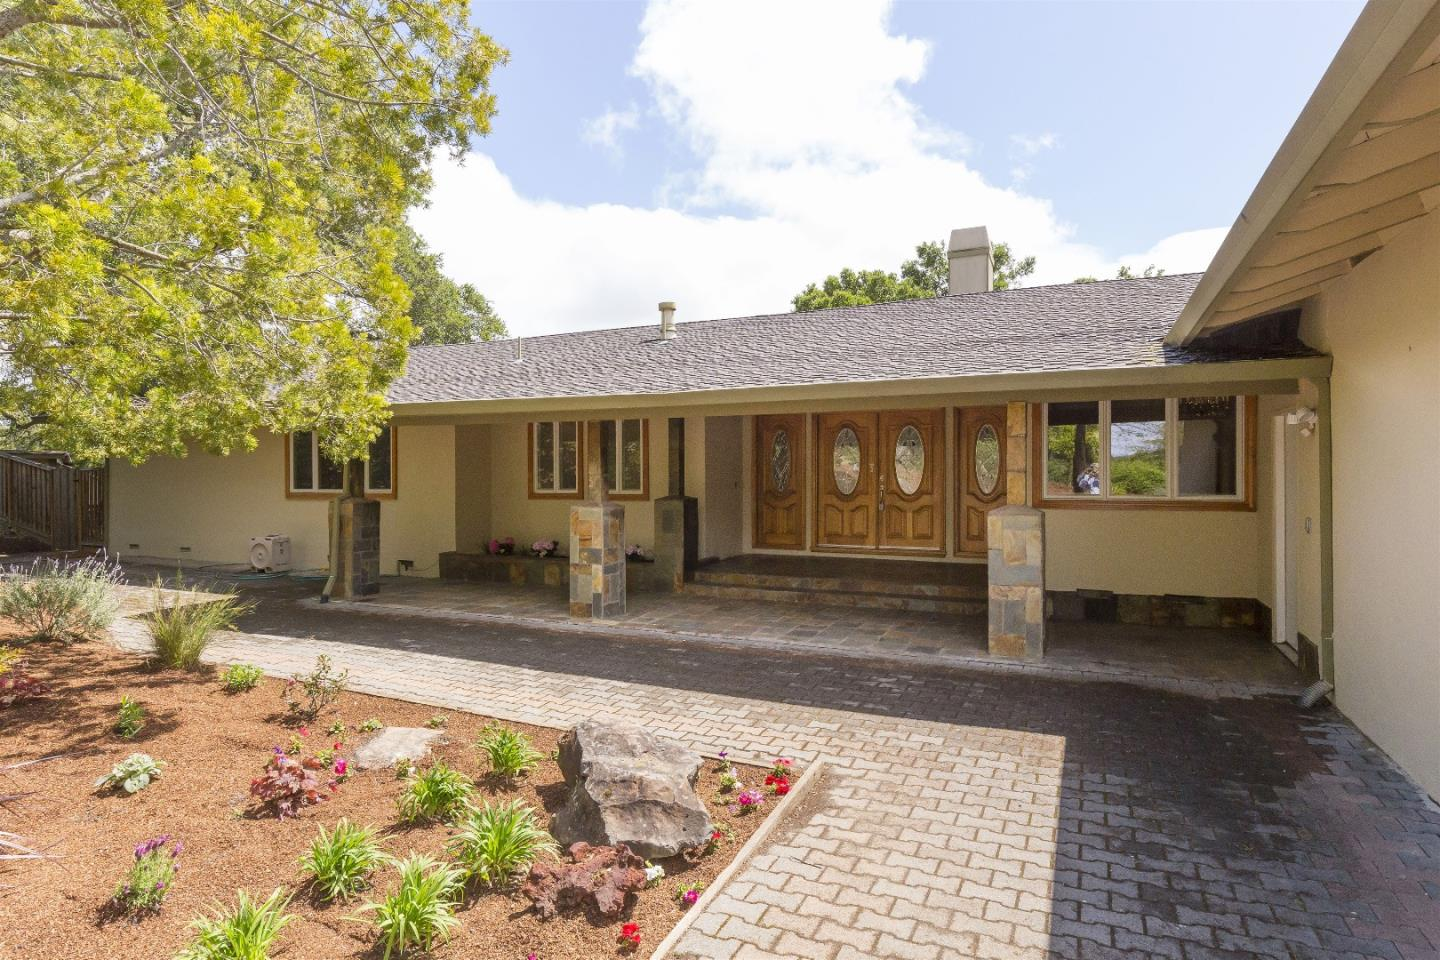 Additional photo for property listing at 12500 Minorca  Los Altos Hills, California 94022 United States